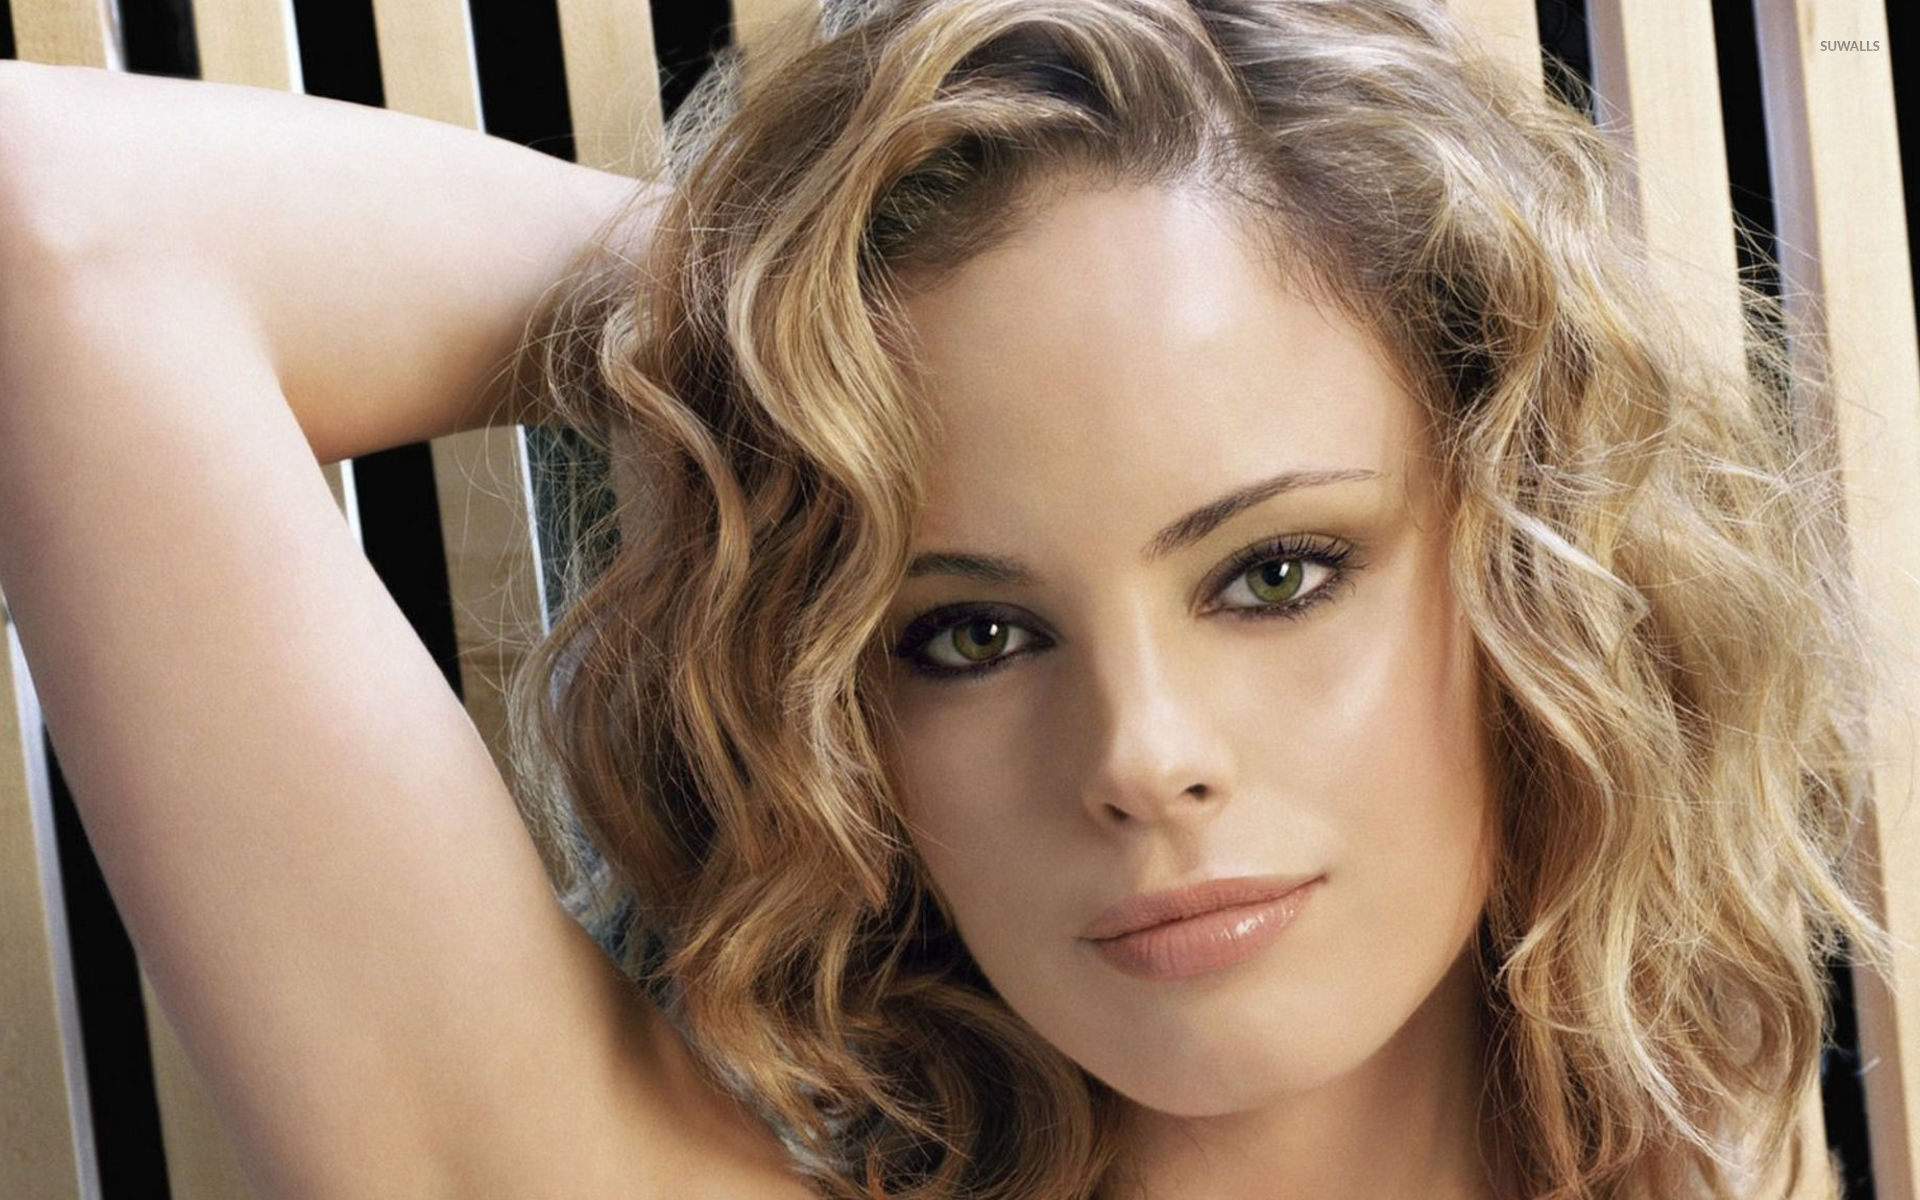 Chandra West Nude Photos 34